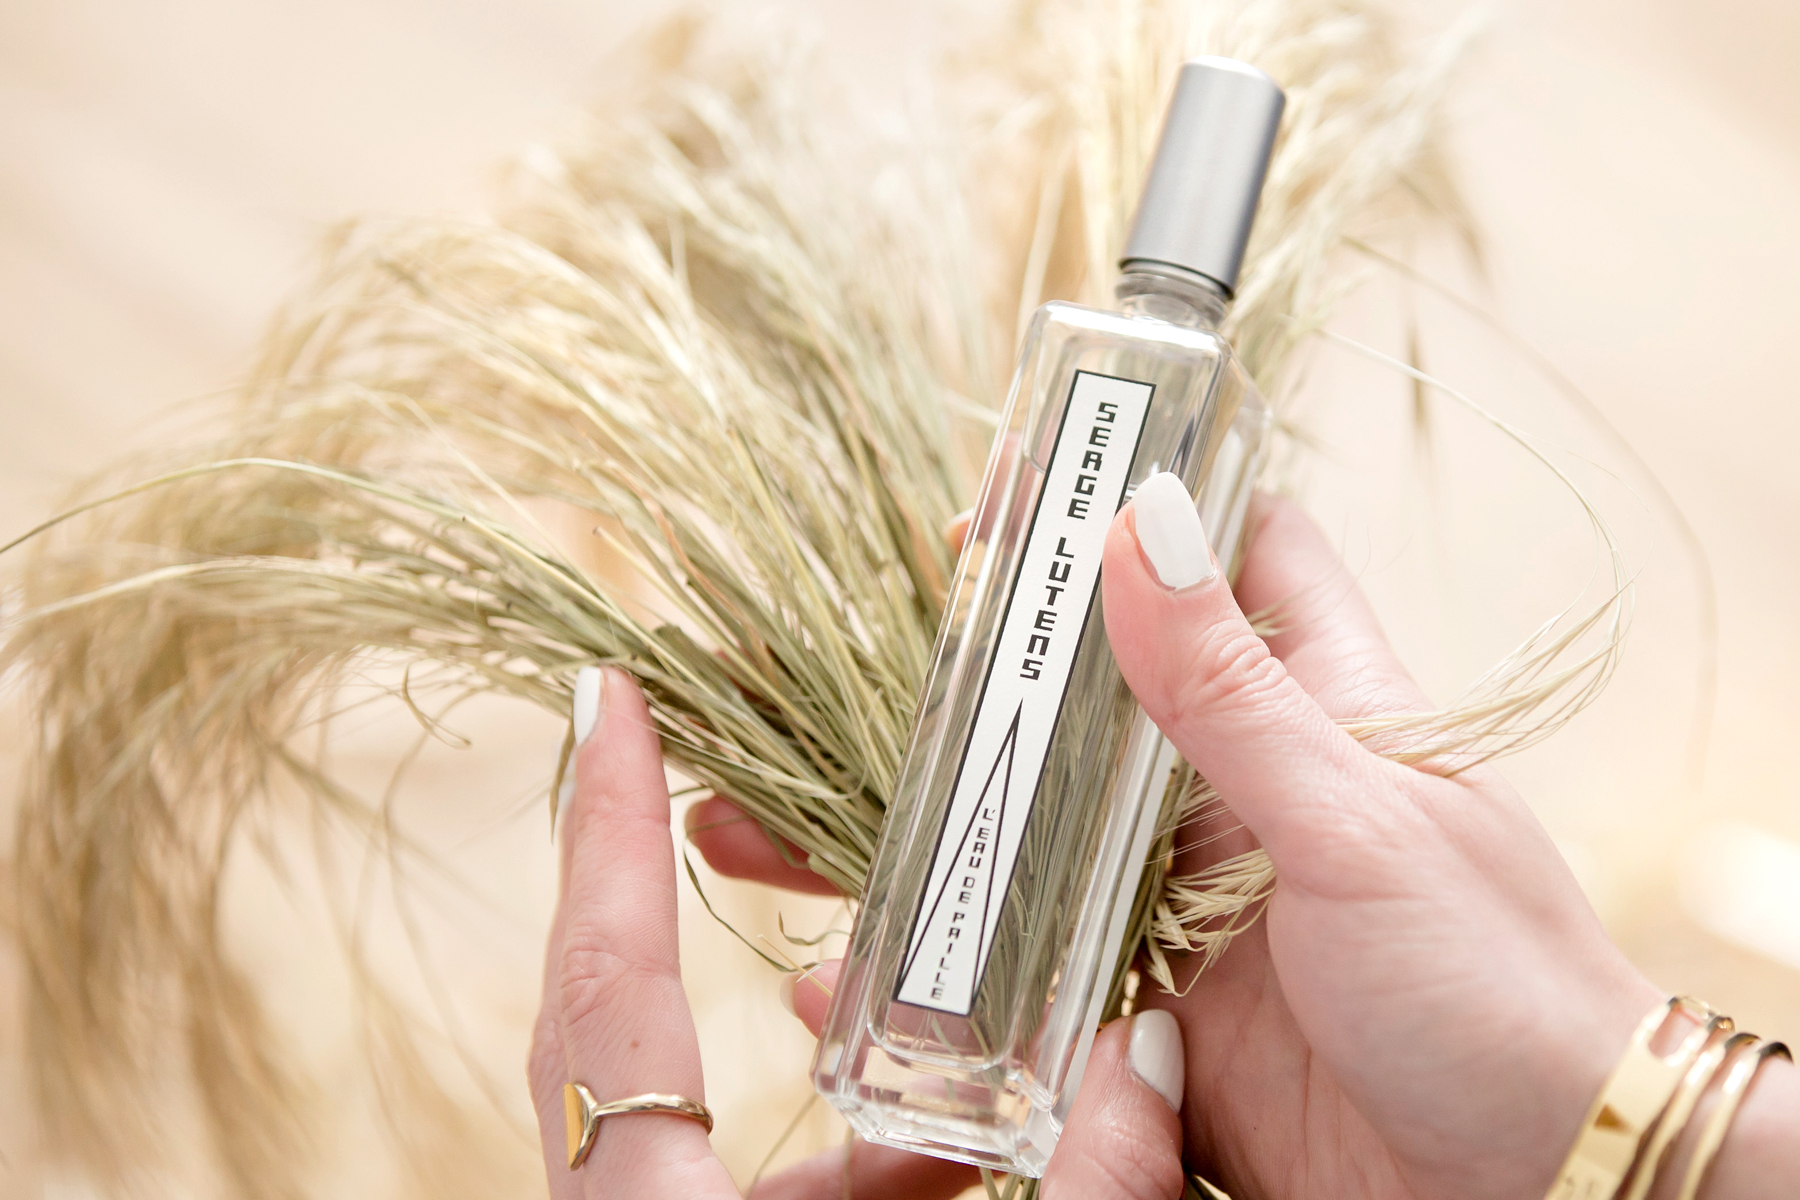 serge lutens l'eau de paille straw stroh land country cowgirl look strawhat heels jeans armerican summer sun chic yellow perfume scent love beauty beautyblogger cats & dogs fashionblog ricarda schernus modeblogger düsseldorf berlin 5